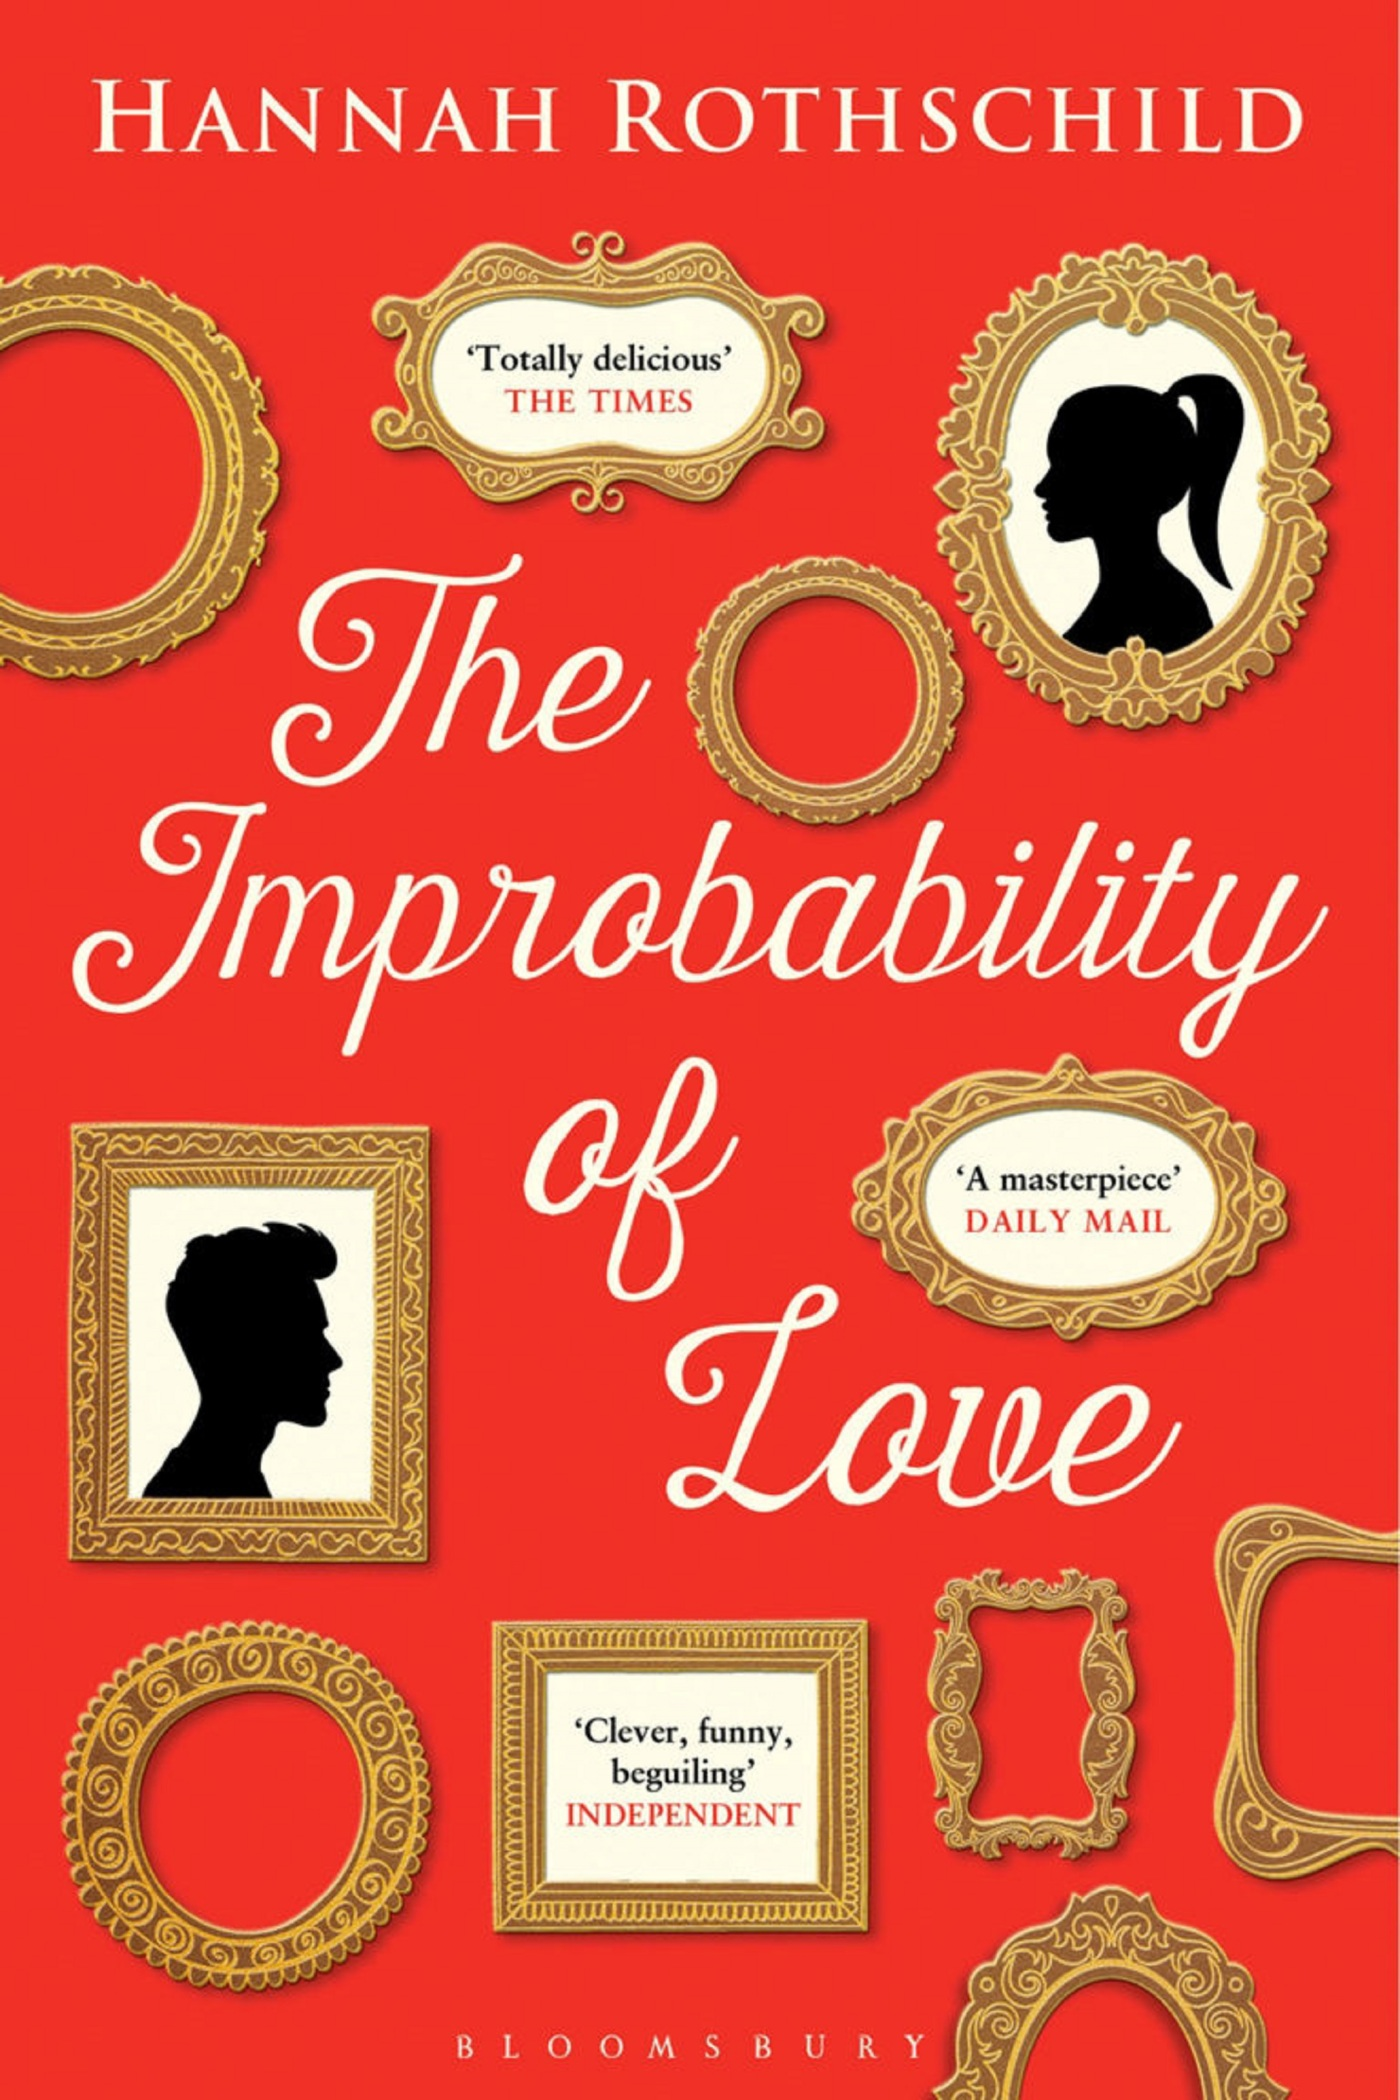 Hannah Rothschild, The Improbability of Love, page de couverture, Bloomsbury